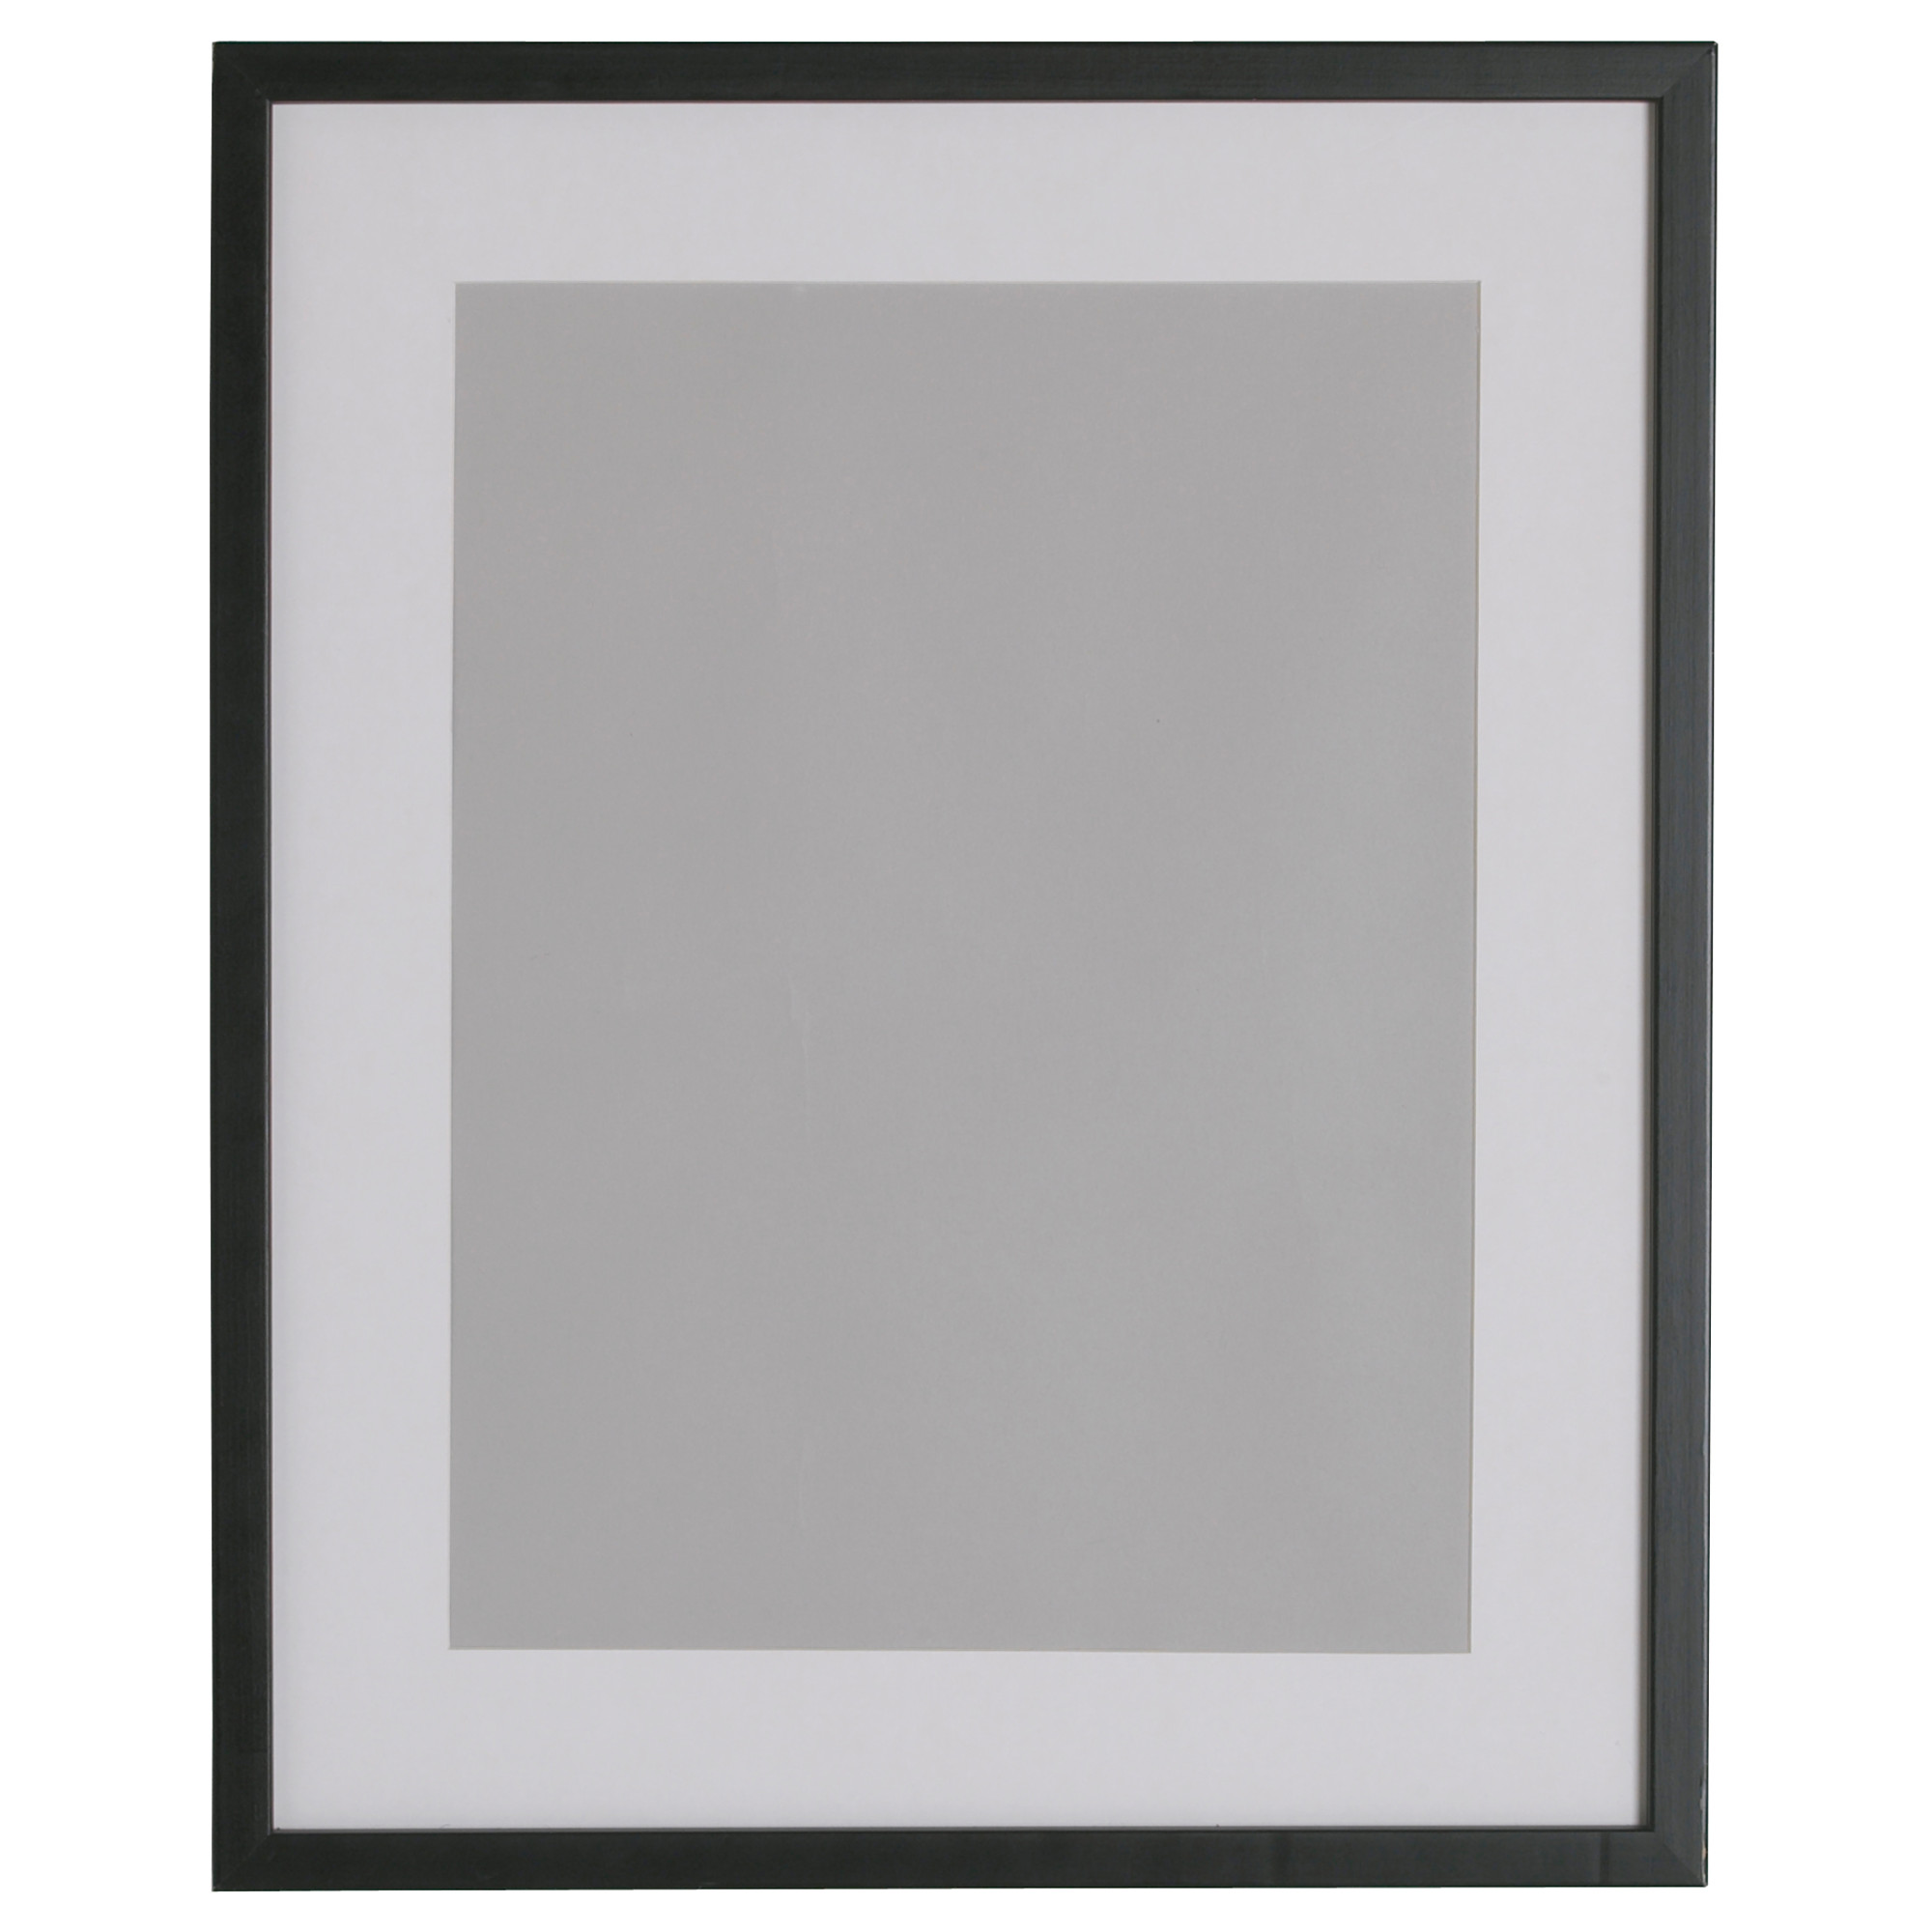 Frame black border for max 1ft x 1ft painting or photo Marcos cuadros ikea